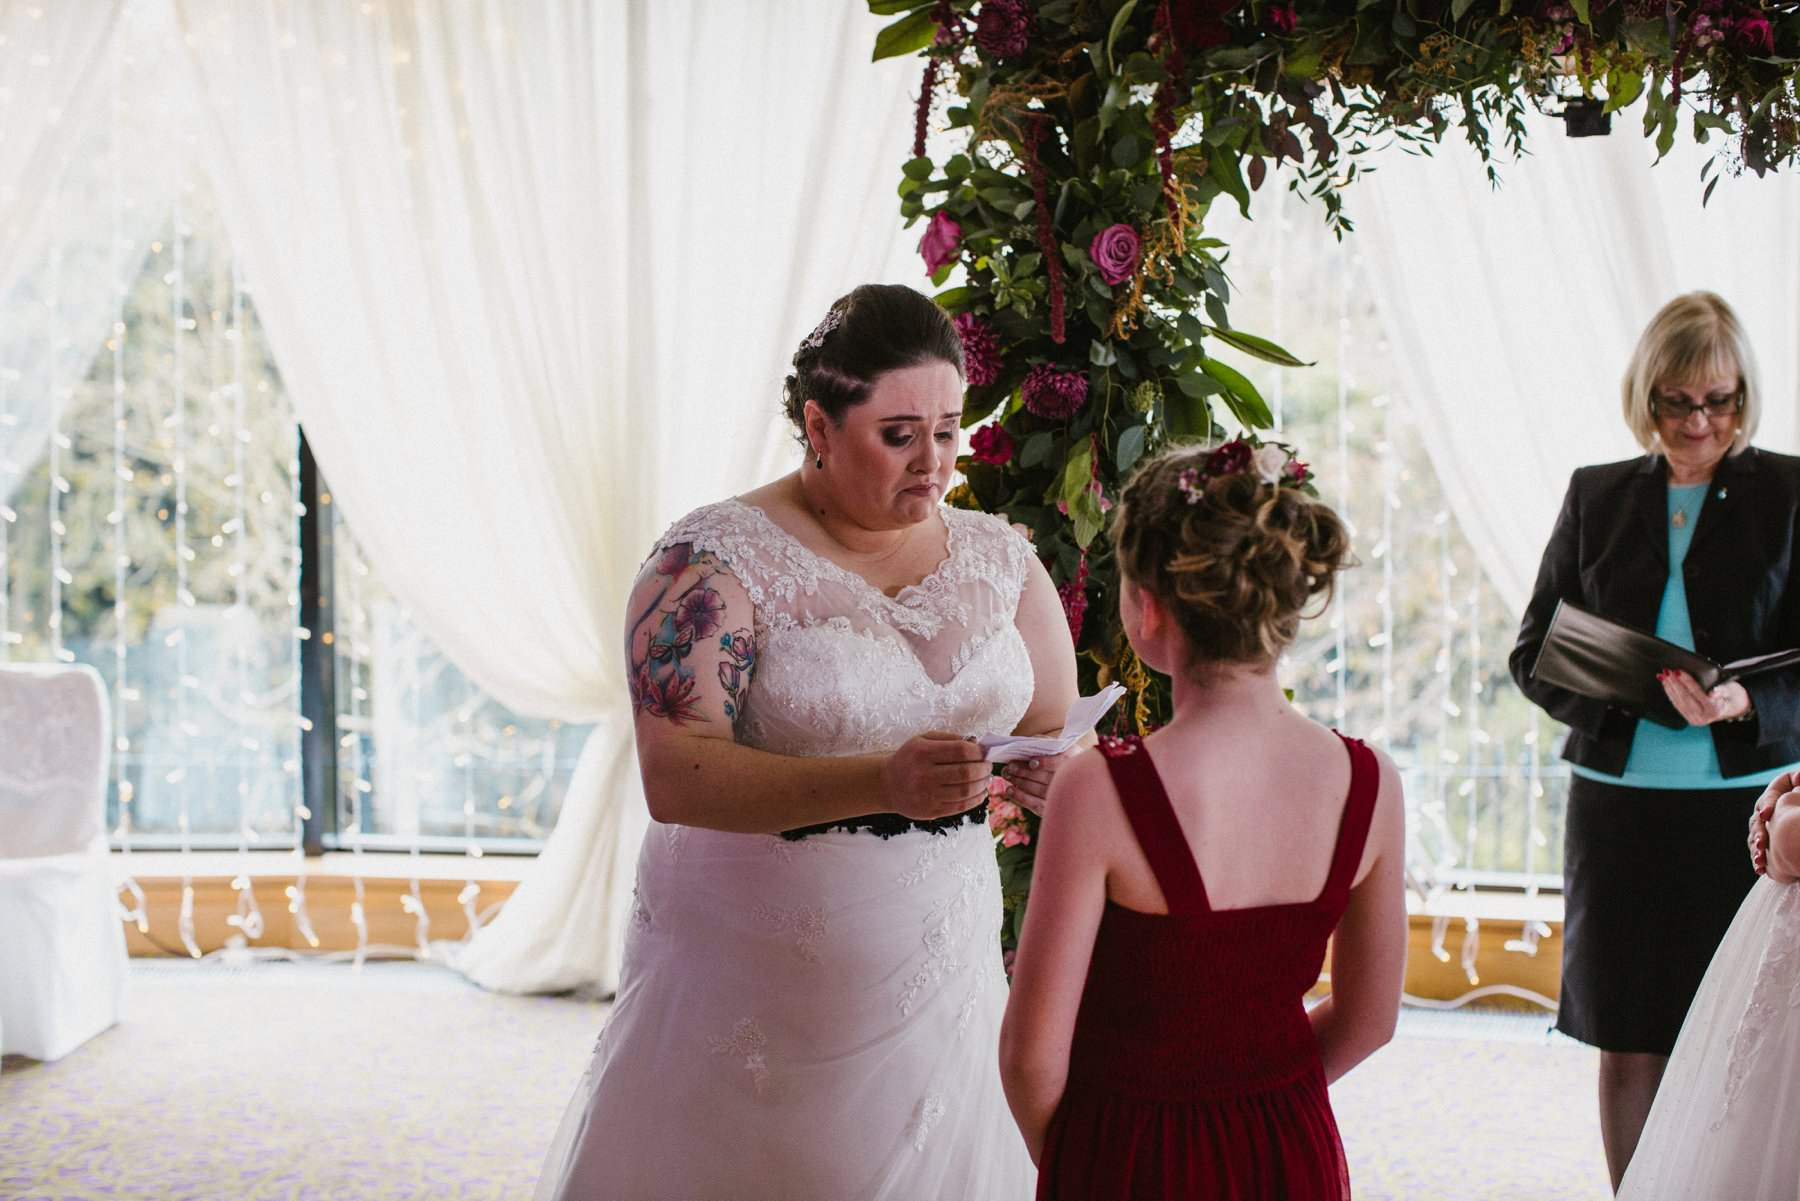 trans friendly wedding photographer northern ireland